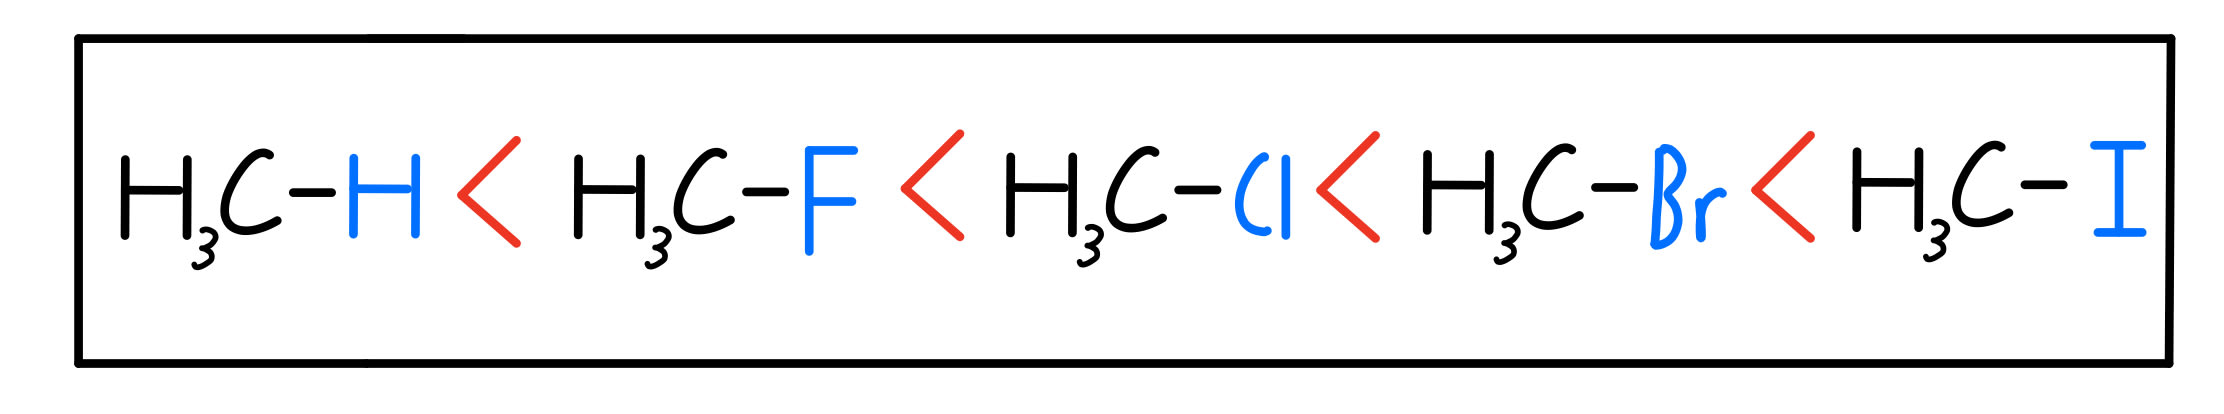 Increasing boiling points with heavier methyl halides